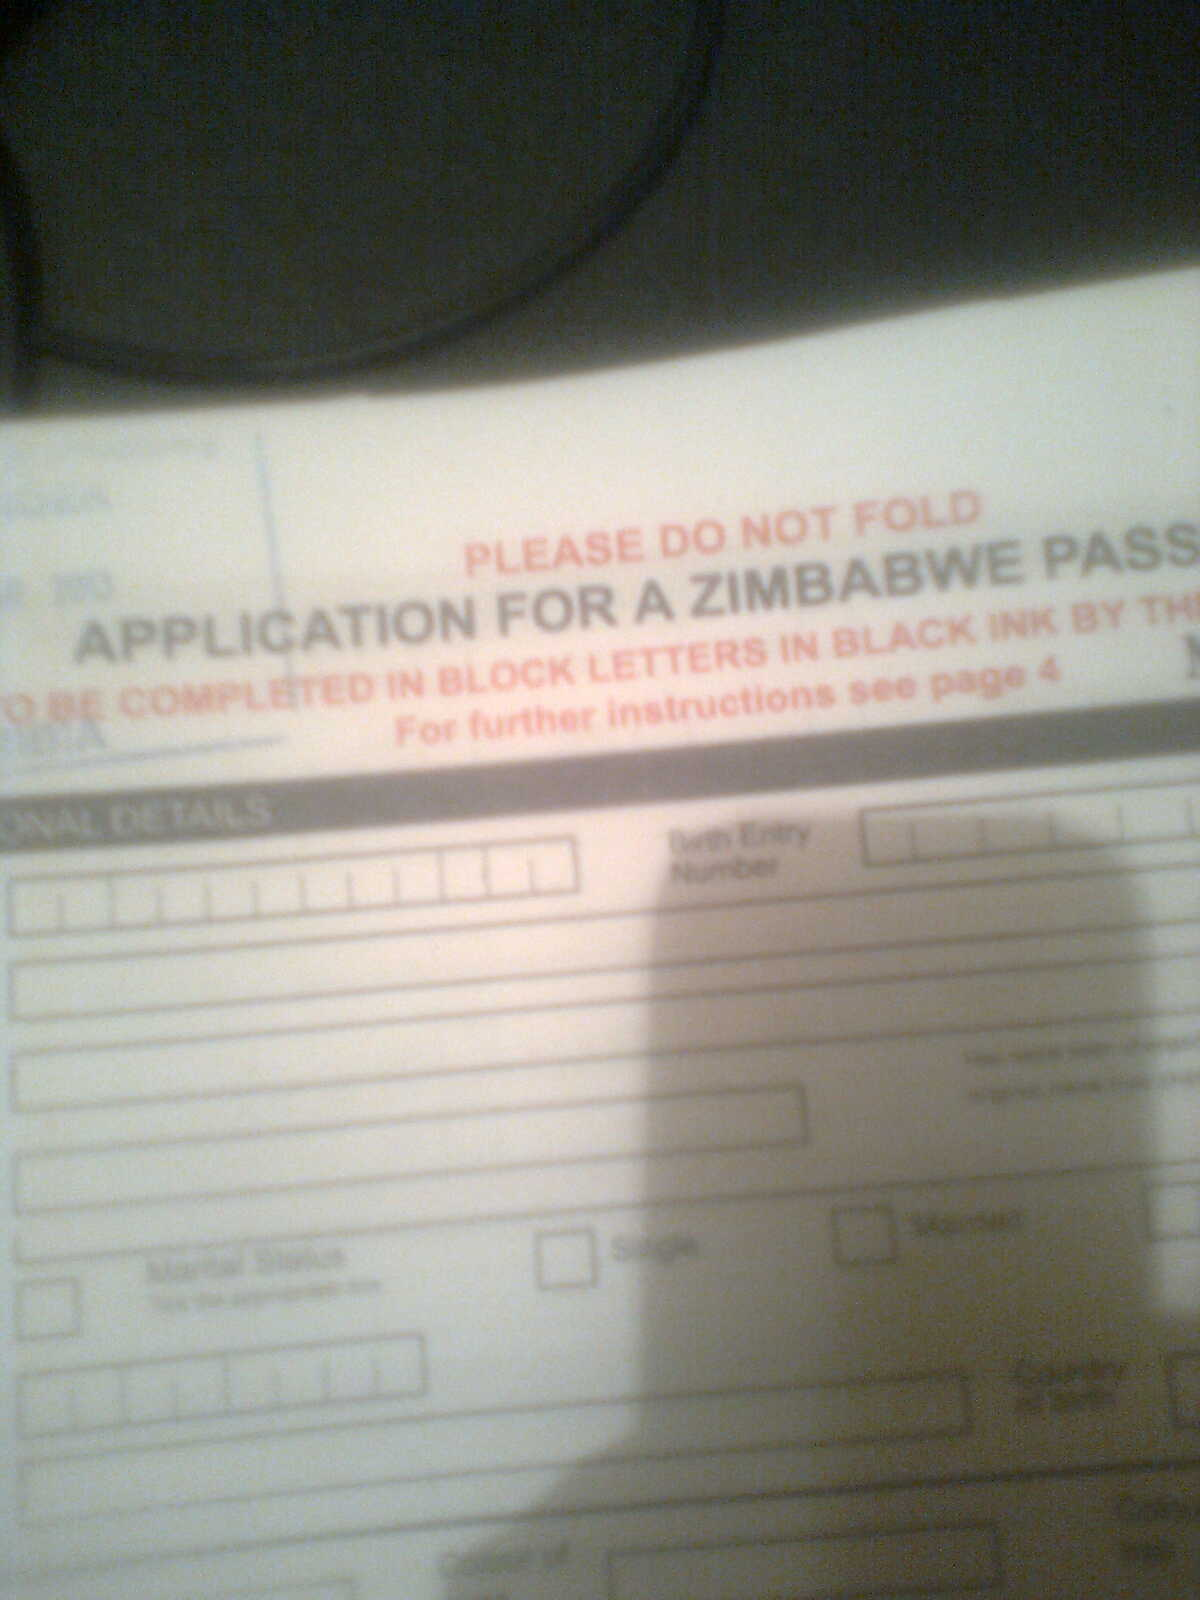 Zimbabwe names how to renew a zimbabwe passport at the zim embassy conclusion i hope zimbabweans living abroad will be satisfied with the above steps to renew a zimbabwean passport at the zim embassy falaconquin